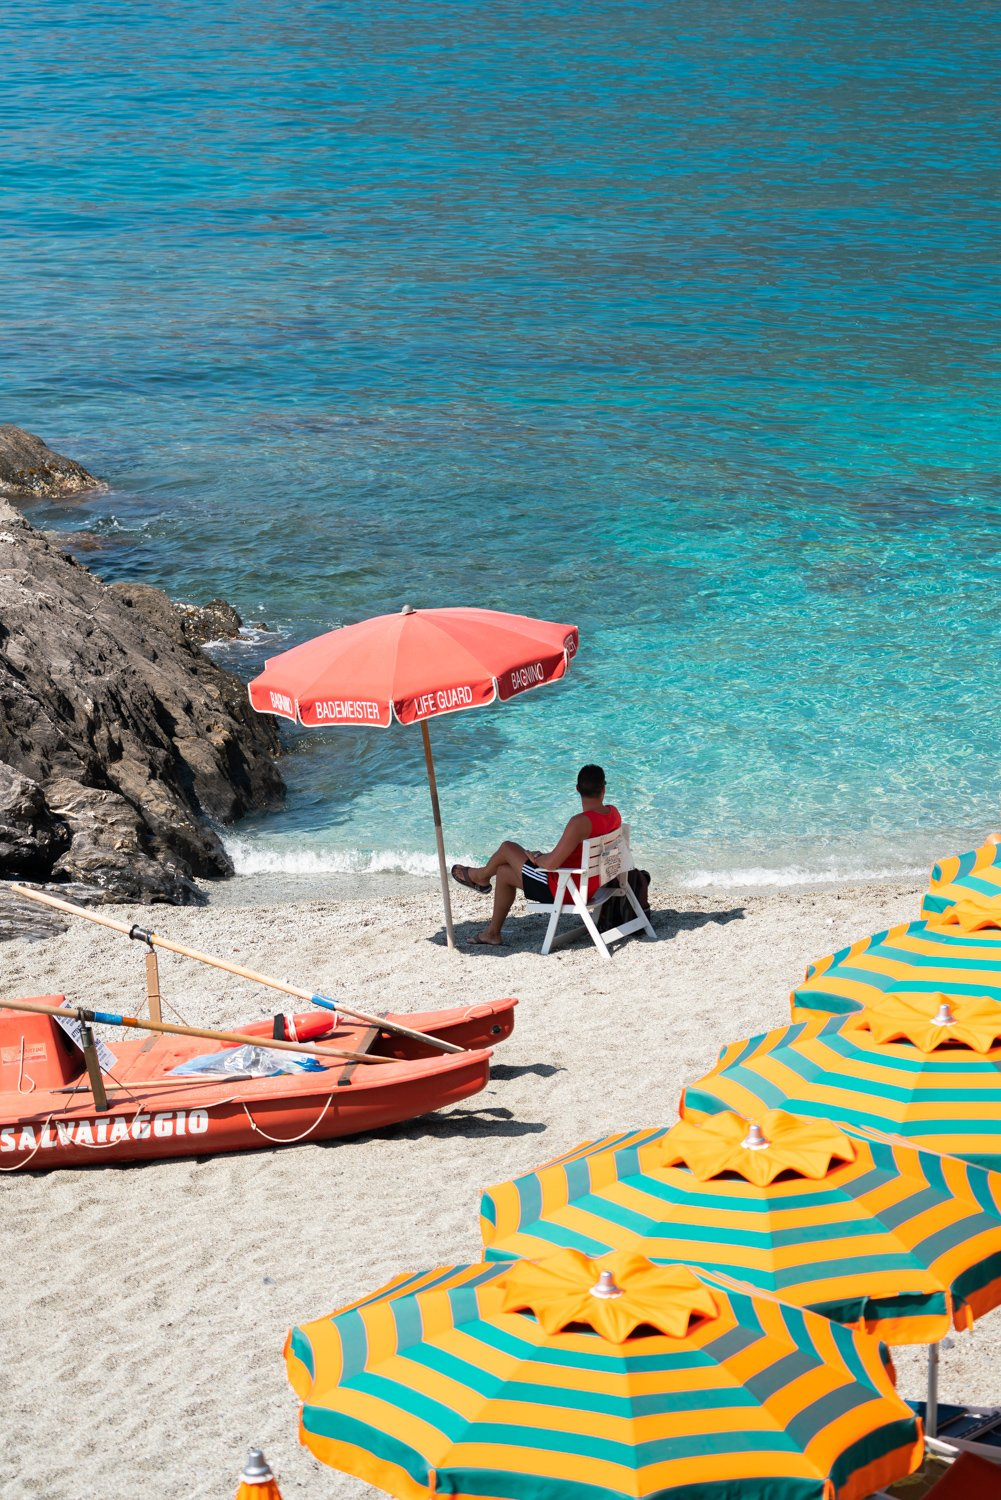 Italian lifeguard sitting under umbrella with boat at blue water on Monterosso Beach